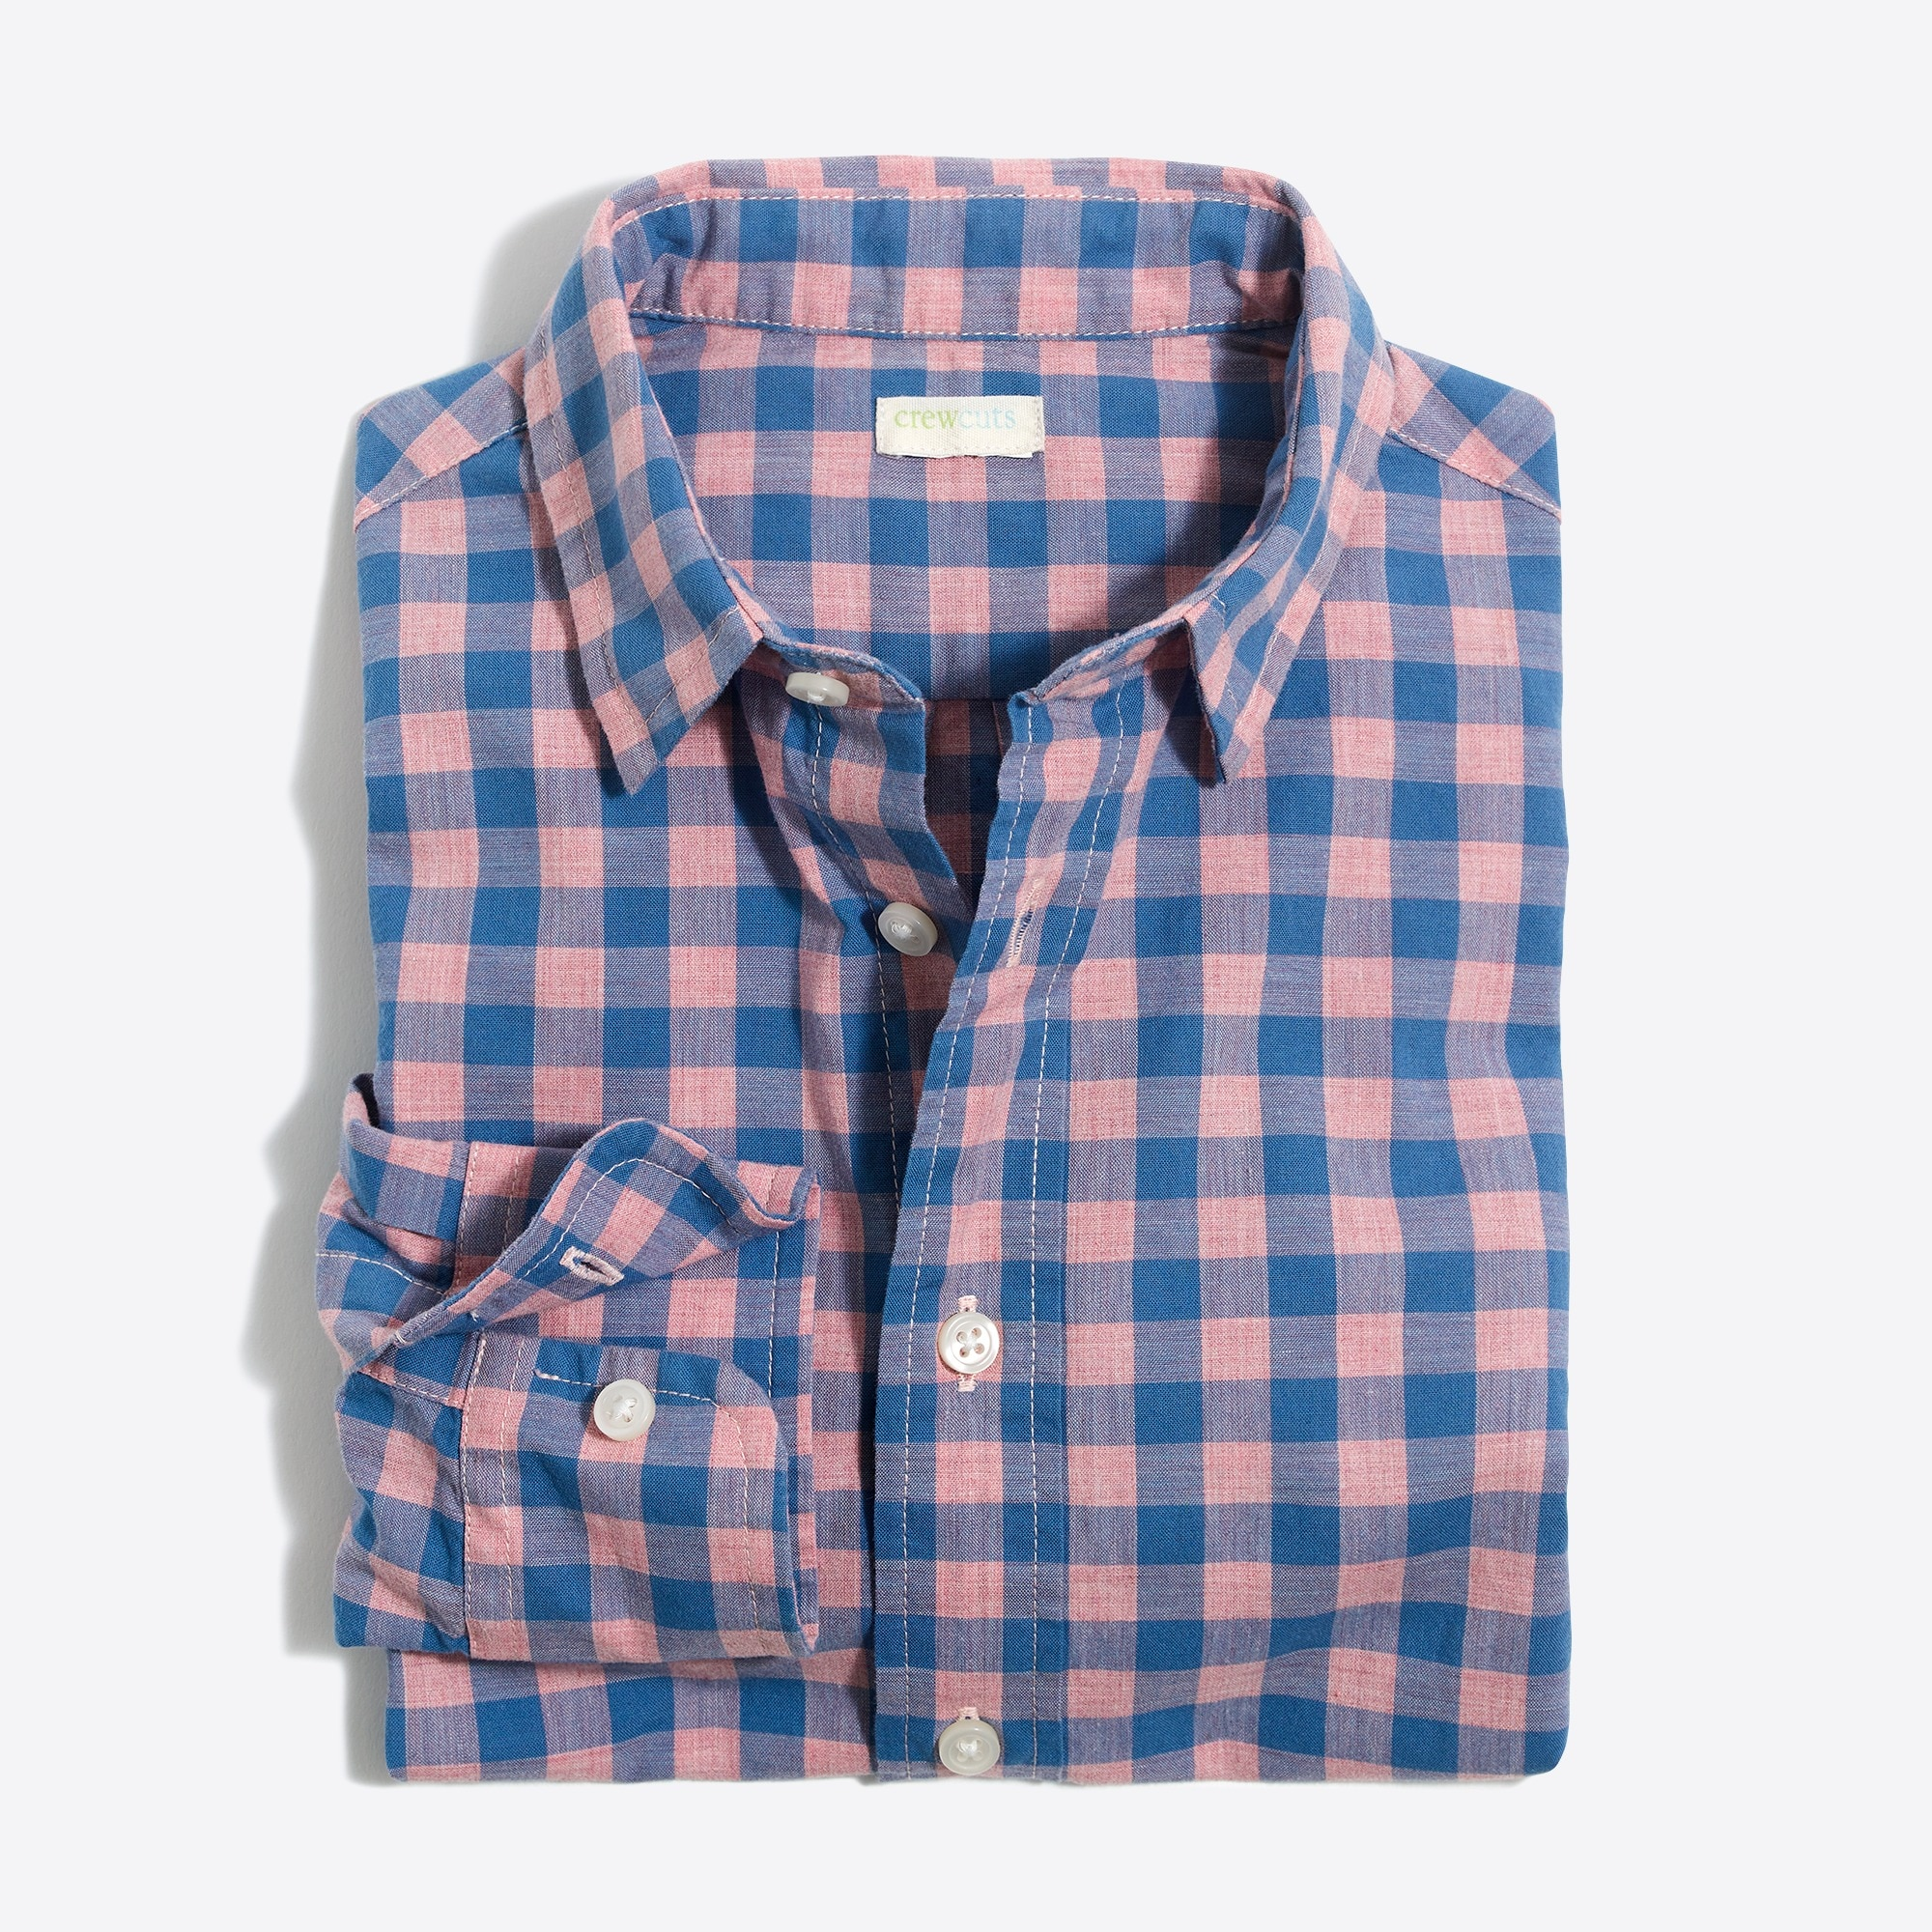 Image 1 for Boys' long-sleeve heathered washed shirt